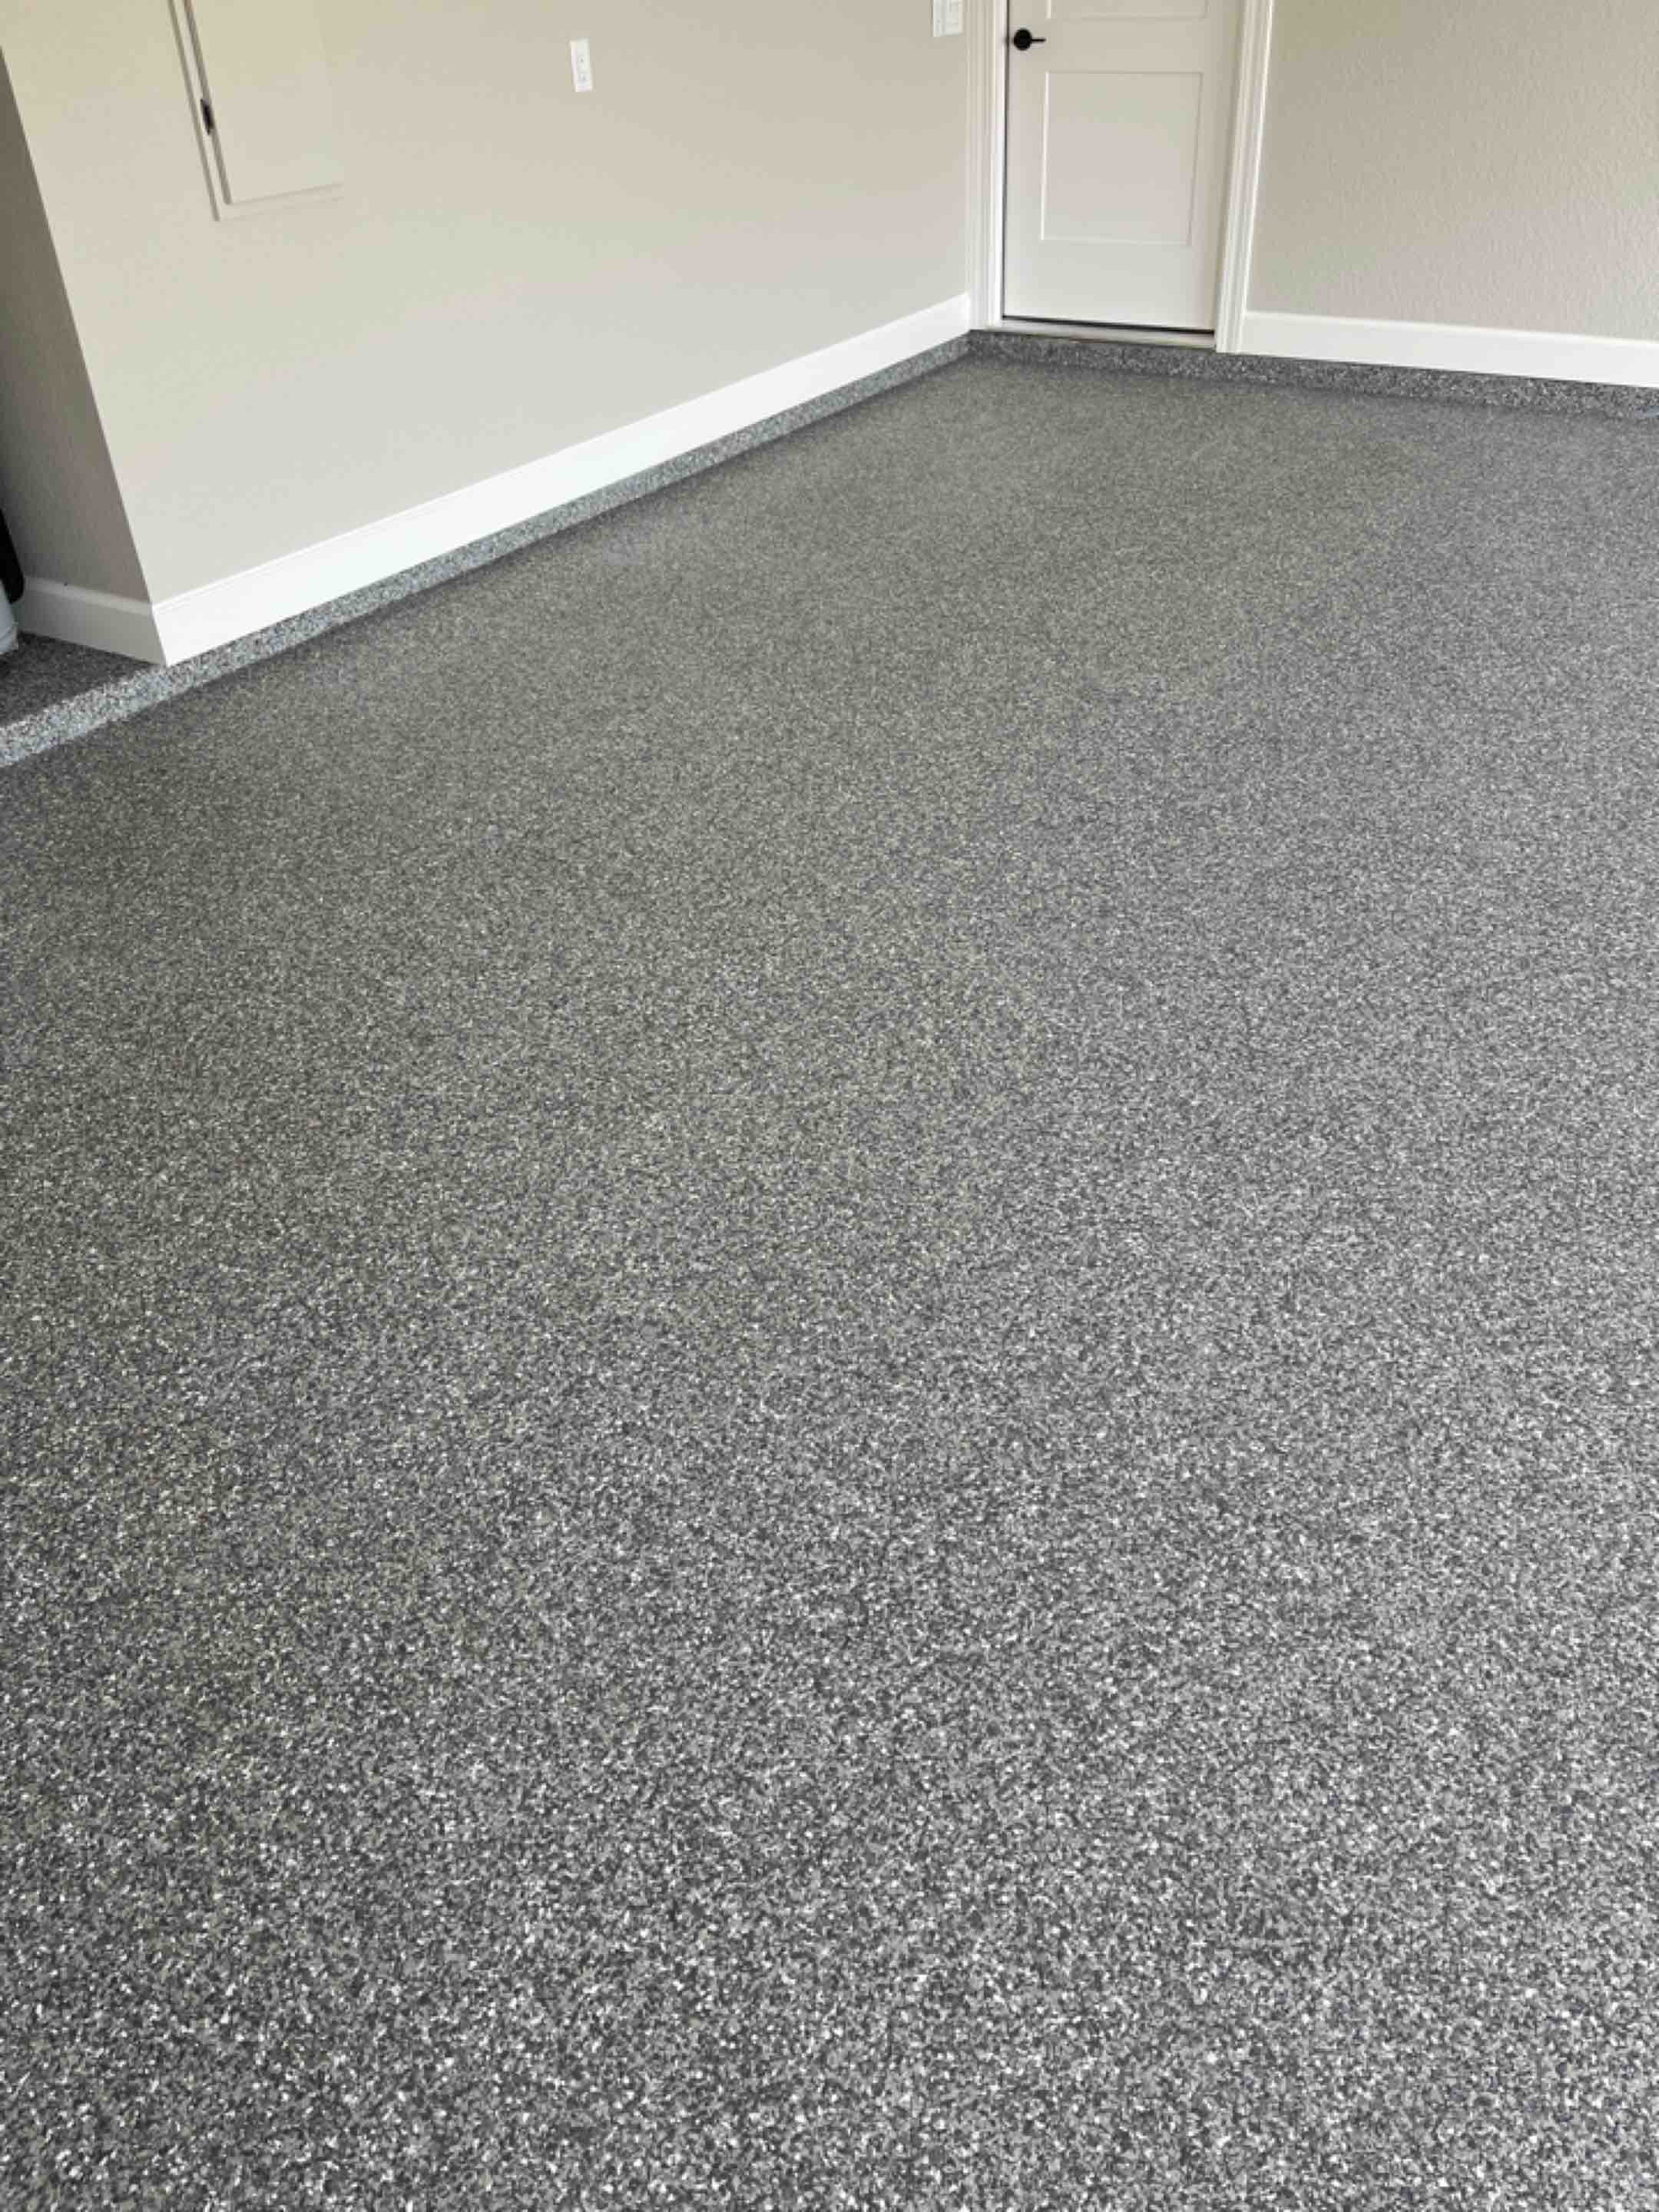 Auburn, IN - The crew just finished resurfacing the concrete with this epoxy flake floor. Near Auburn Indiana.